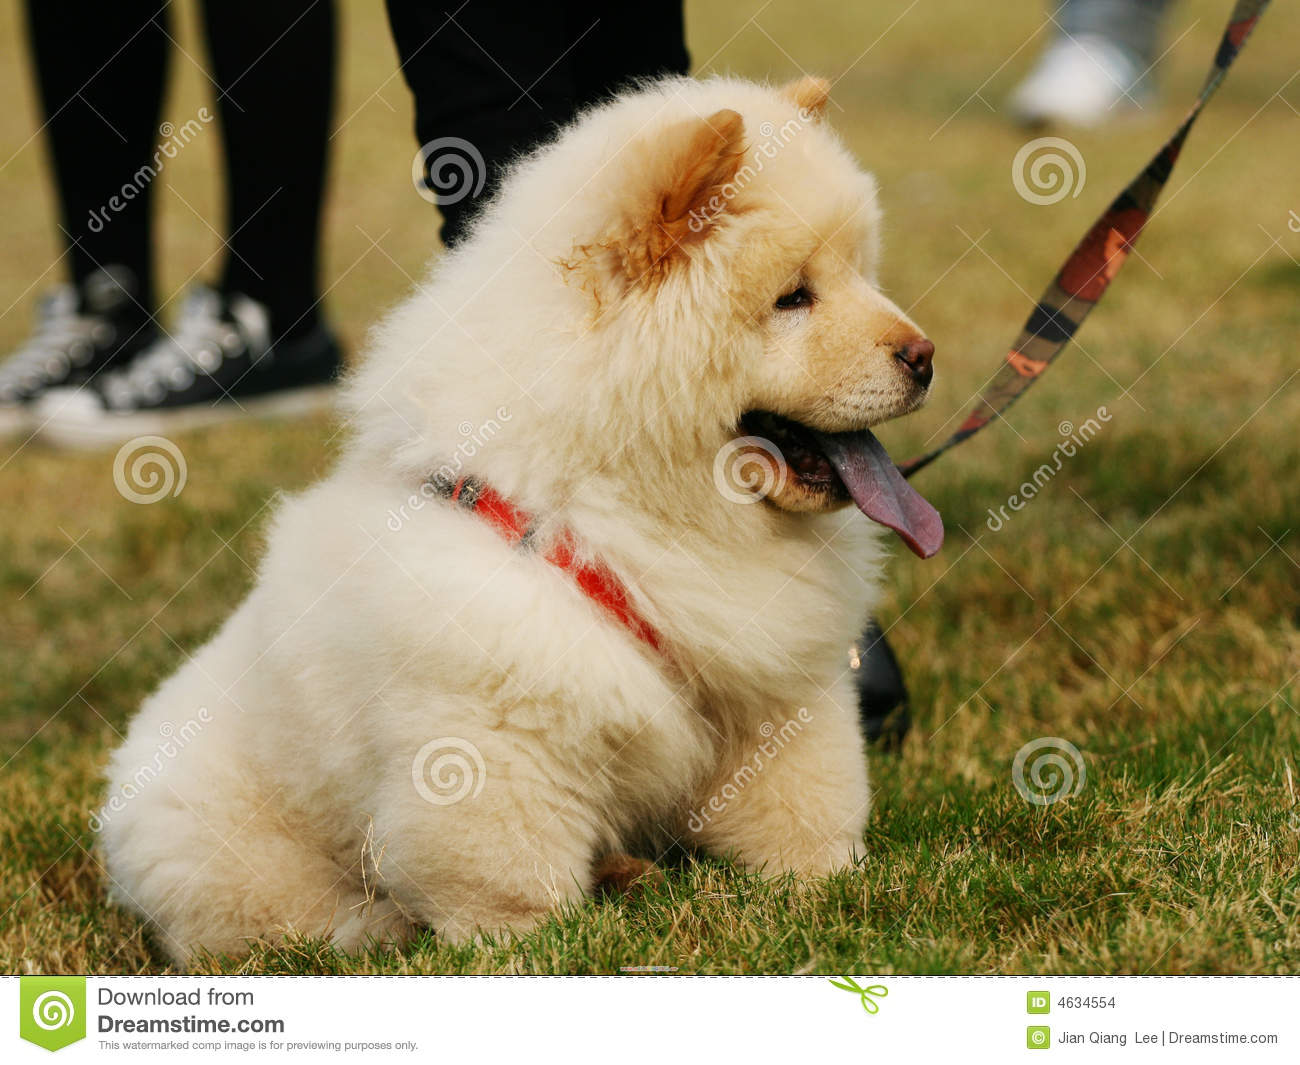 Cute Baby Puppy Pictures Wallpaper Cute Dog Chow Stock Photo Image Of Puppy Clever Sweet